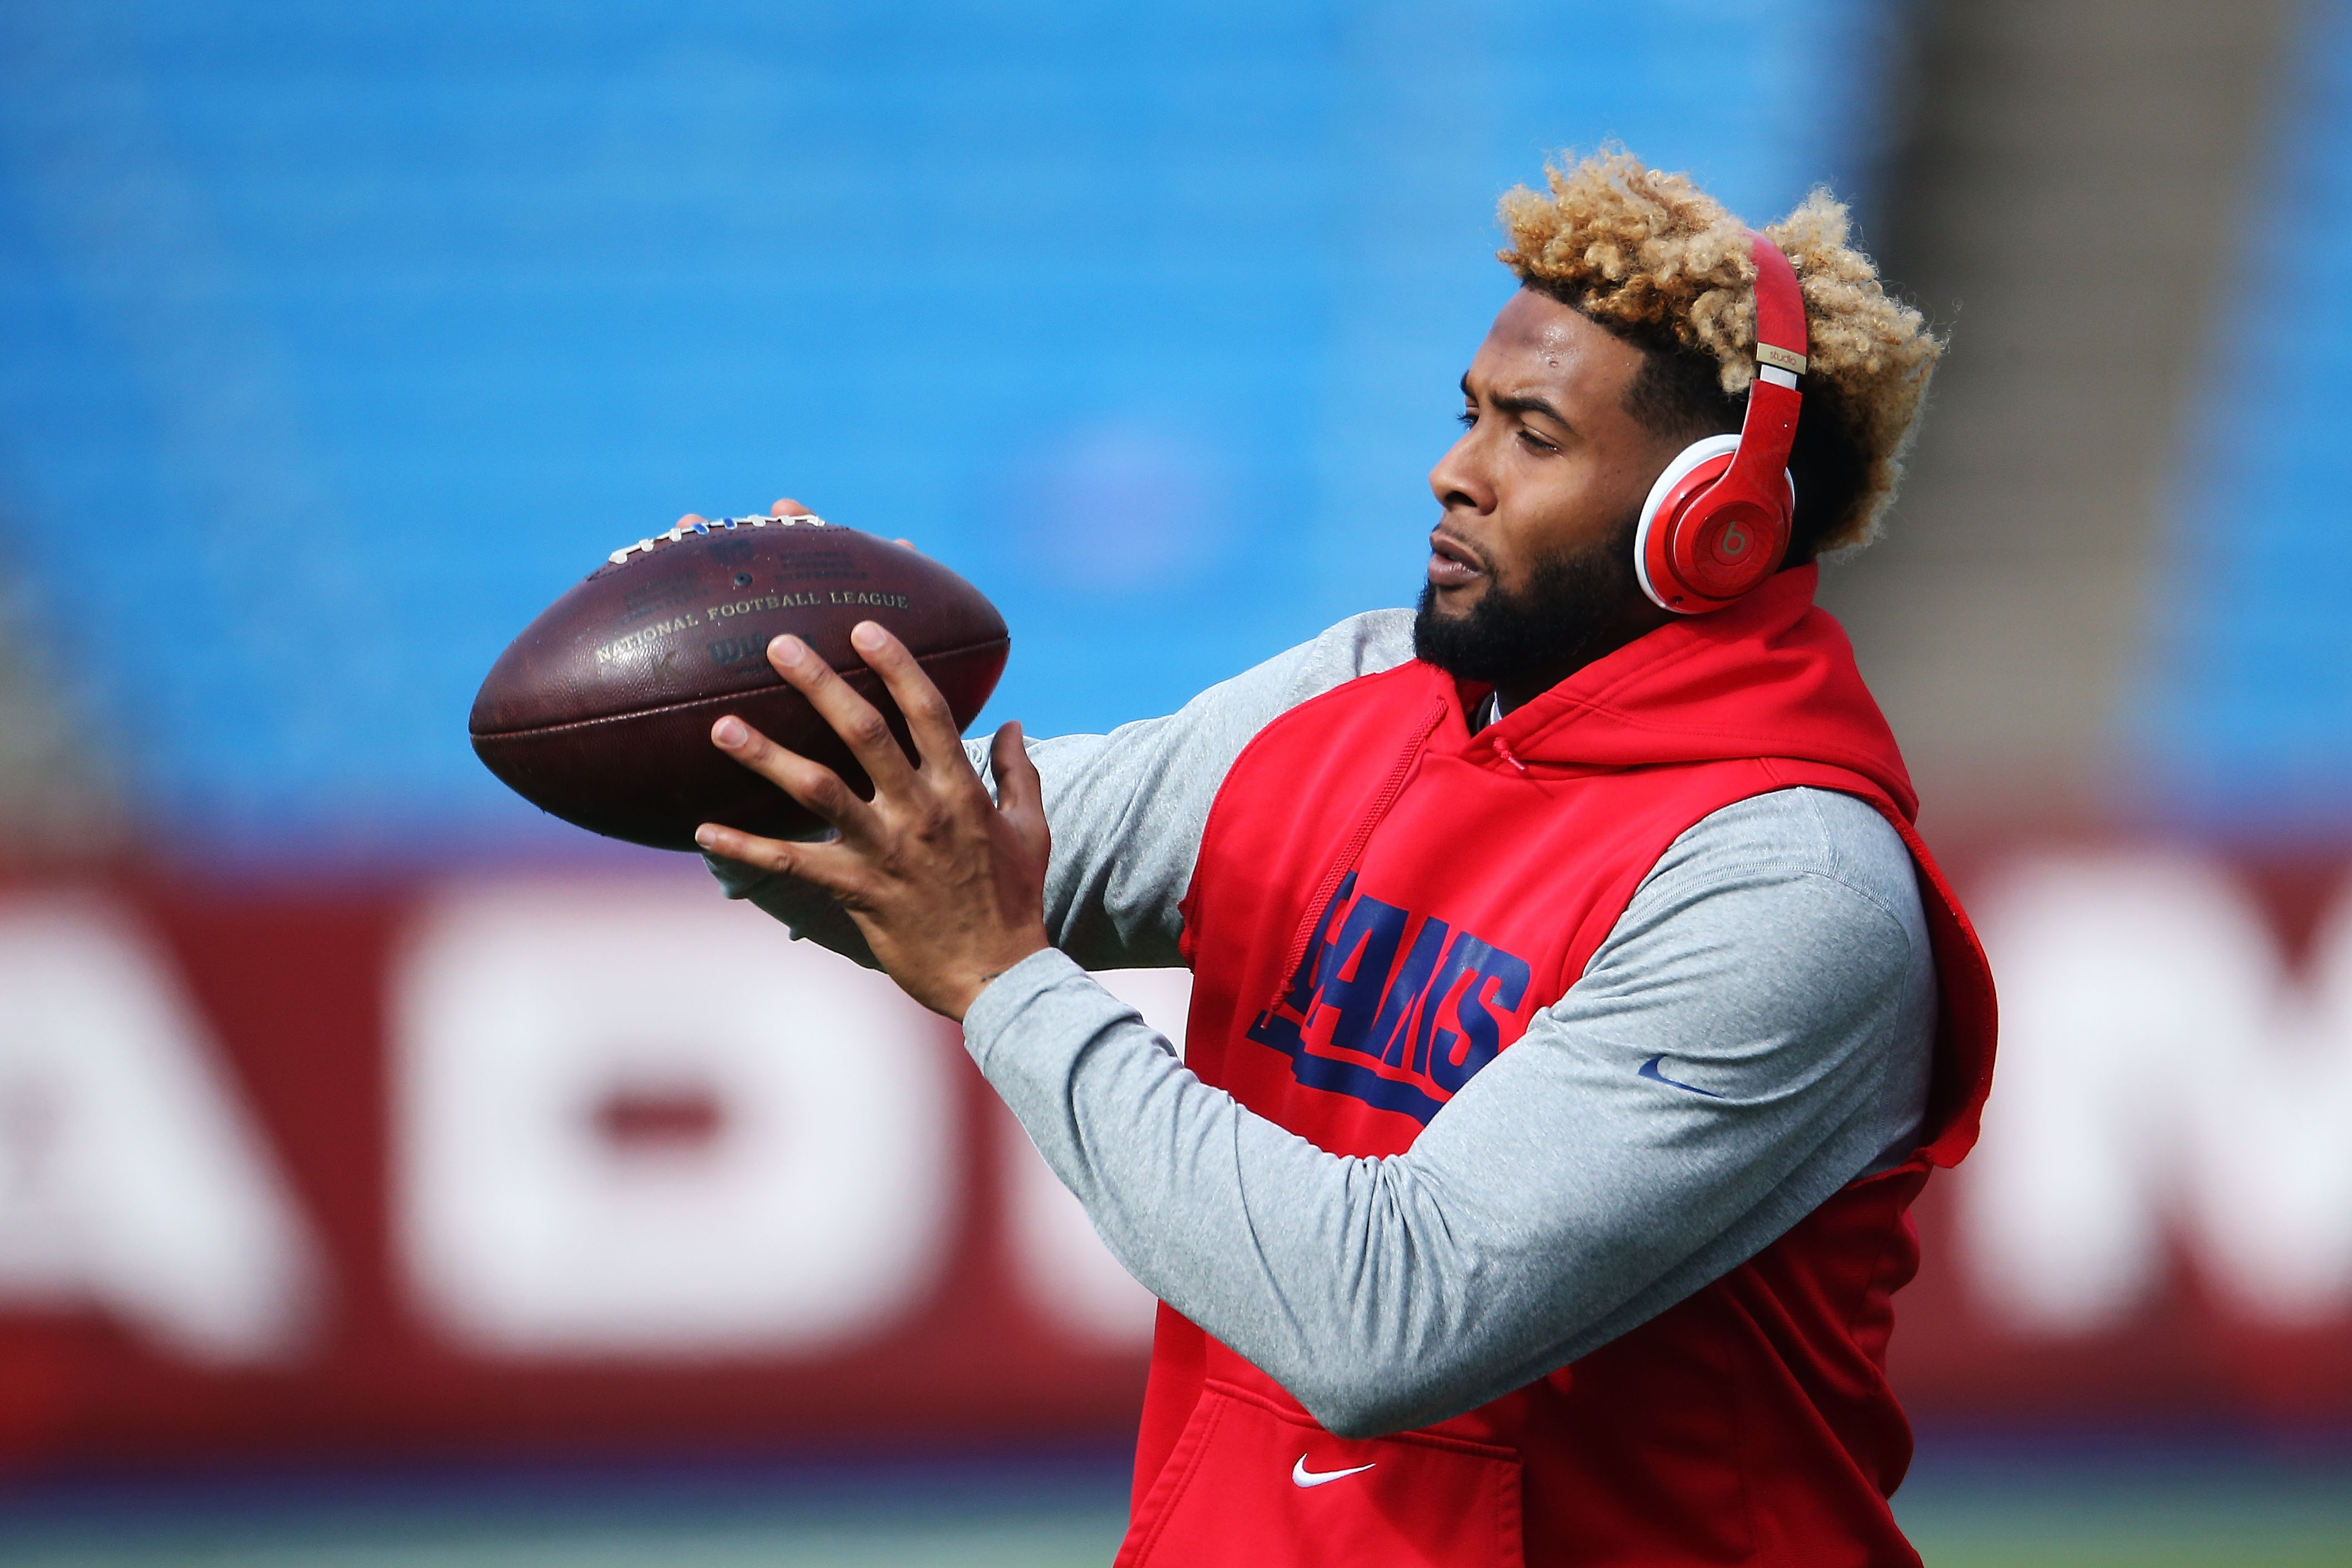 Will Odell Beckham play Monday? Pre-game warm-ups will tell the story.